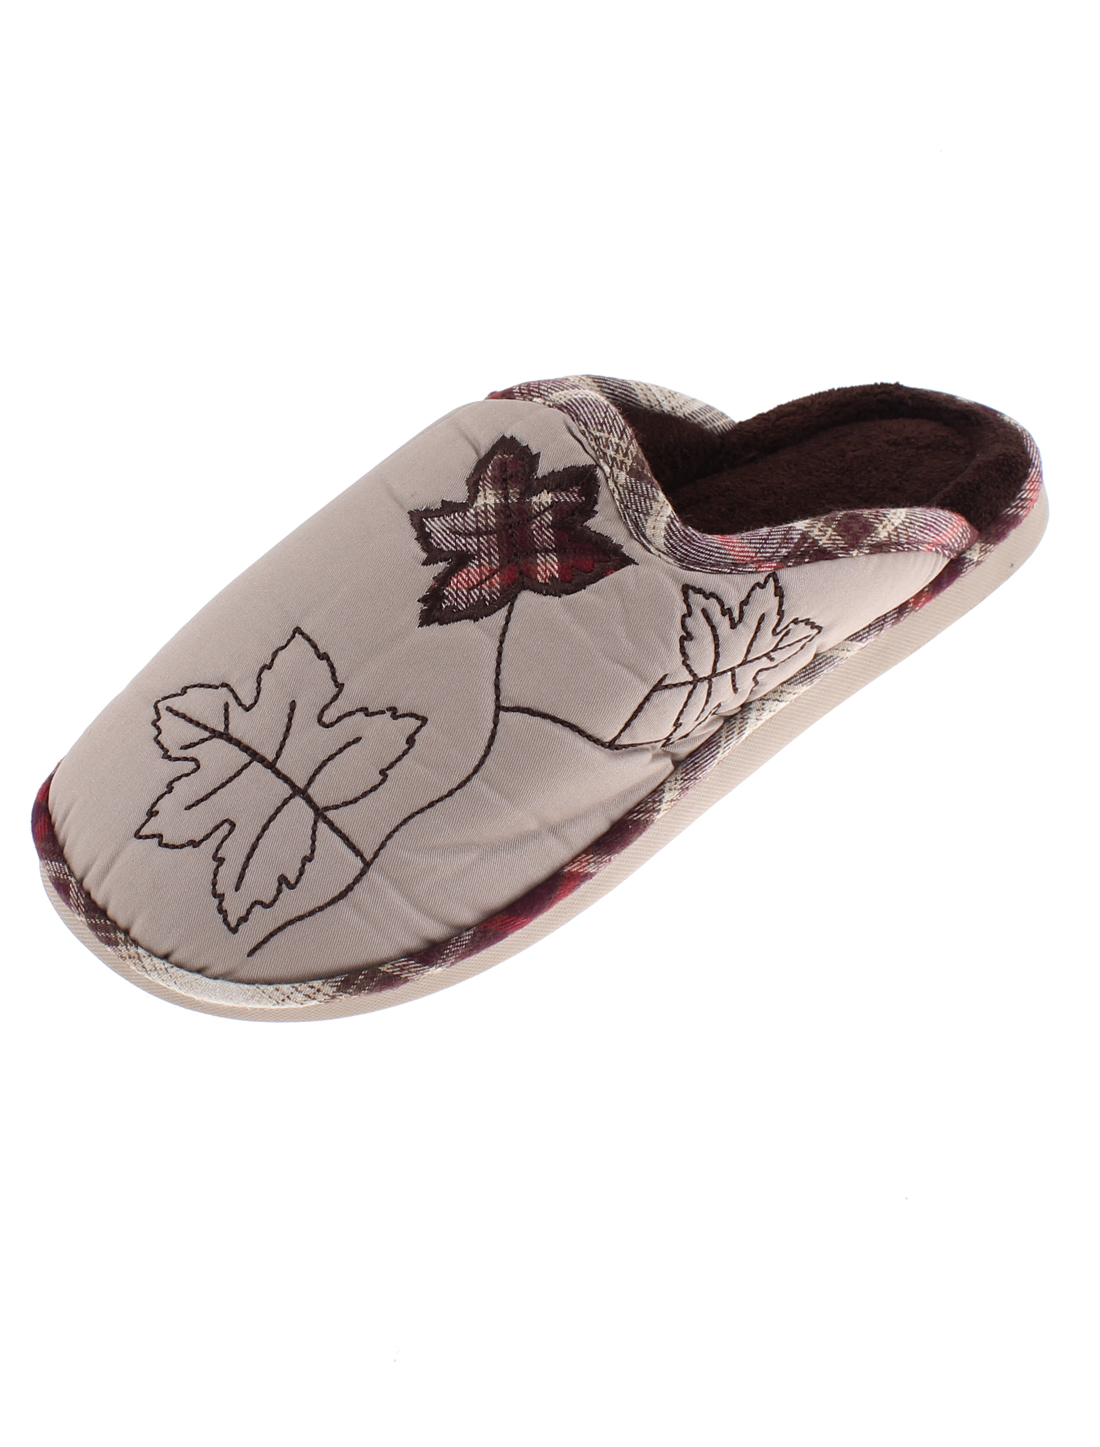 Ladies Maple Leaf Pattern Casual Warmer Cotton Slippers Brown US 9.5